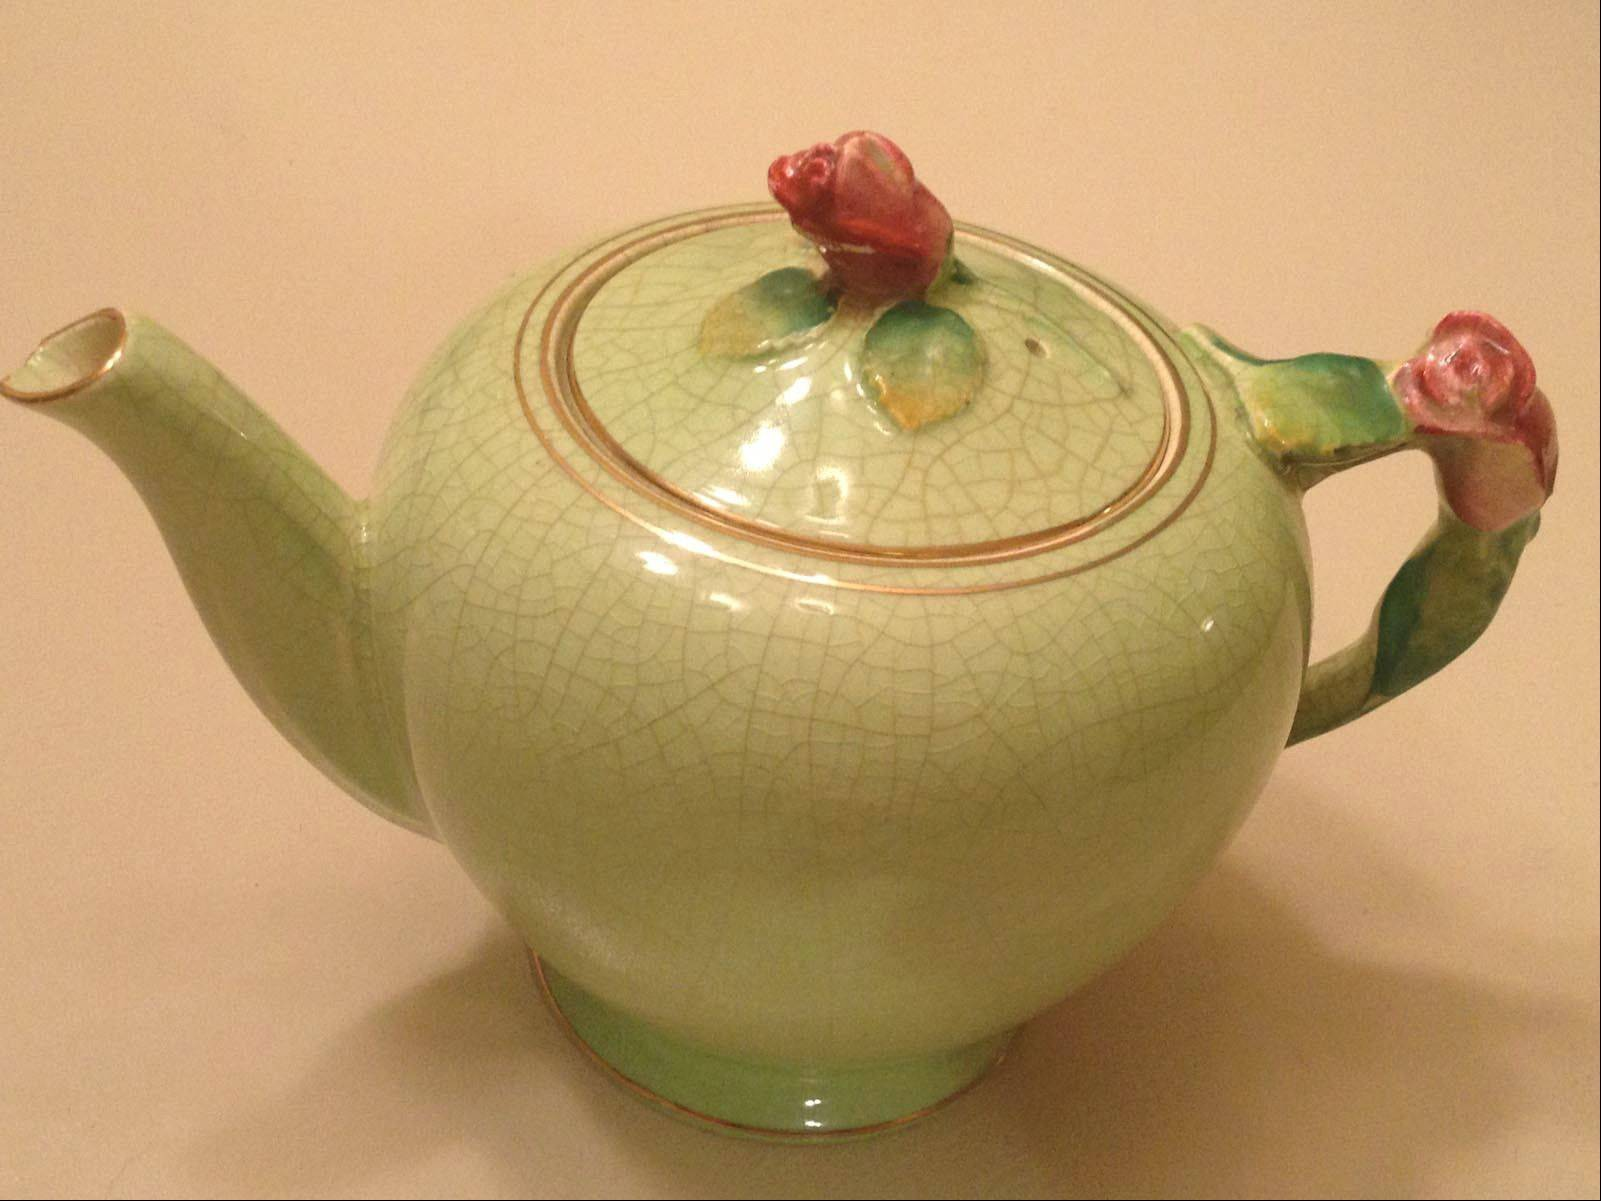 Pretty red roses and a crackle celadon-green glaze make this Royal Winton teapot a charmer.